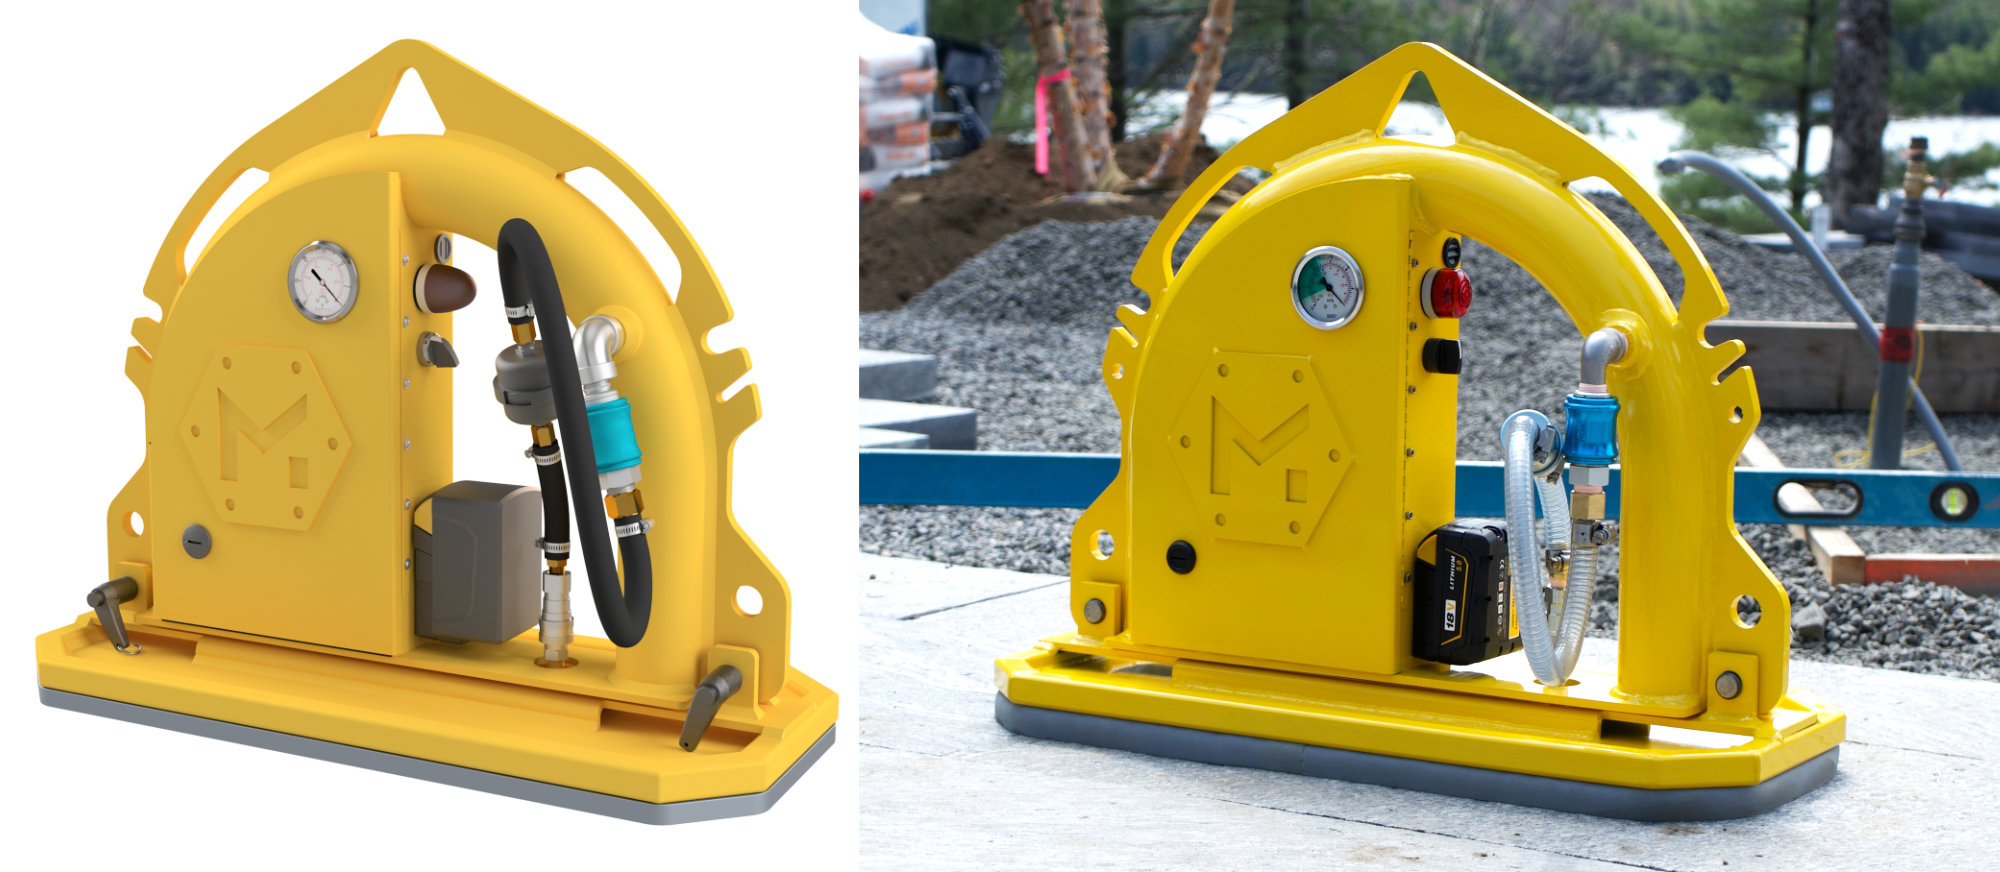 MQUIP Mini Mk2 CAD design and final product side by side.